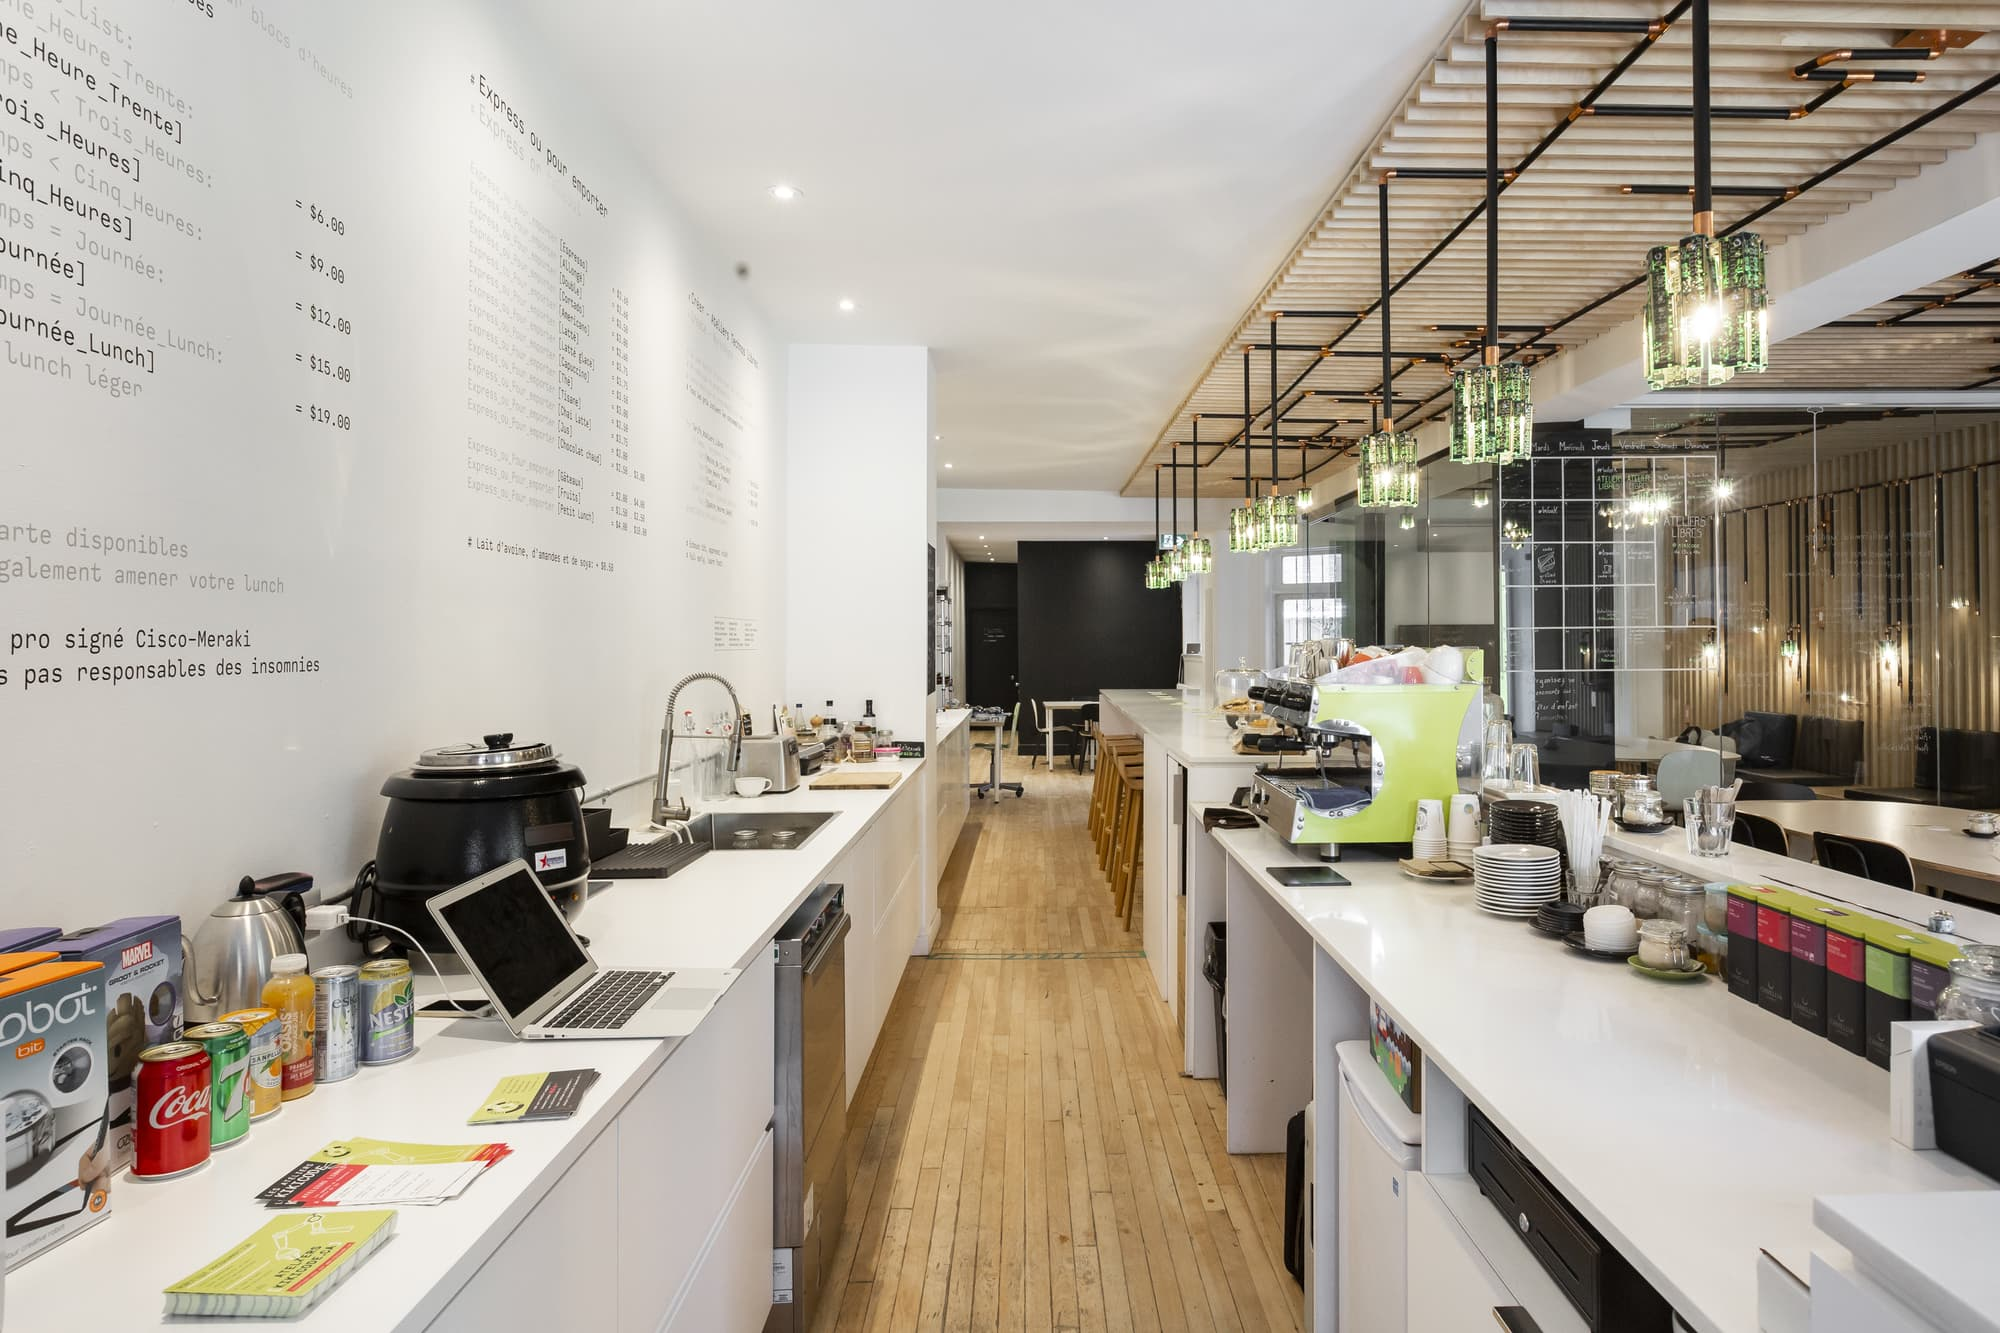 cafe construction with white counters and walls